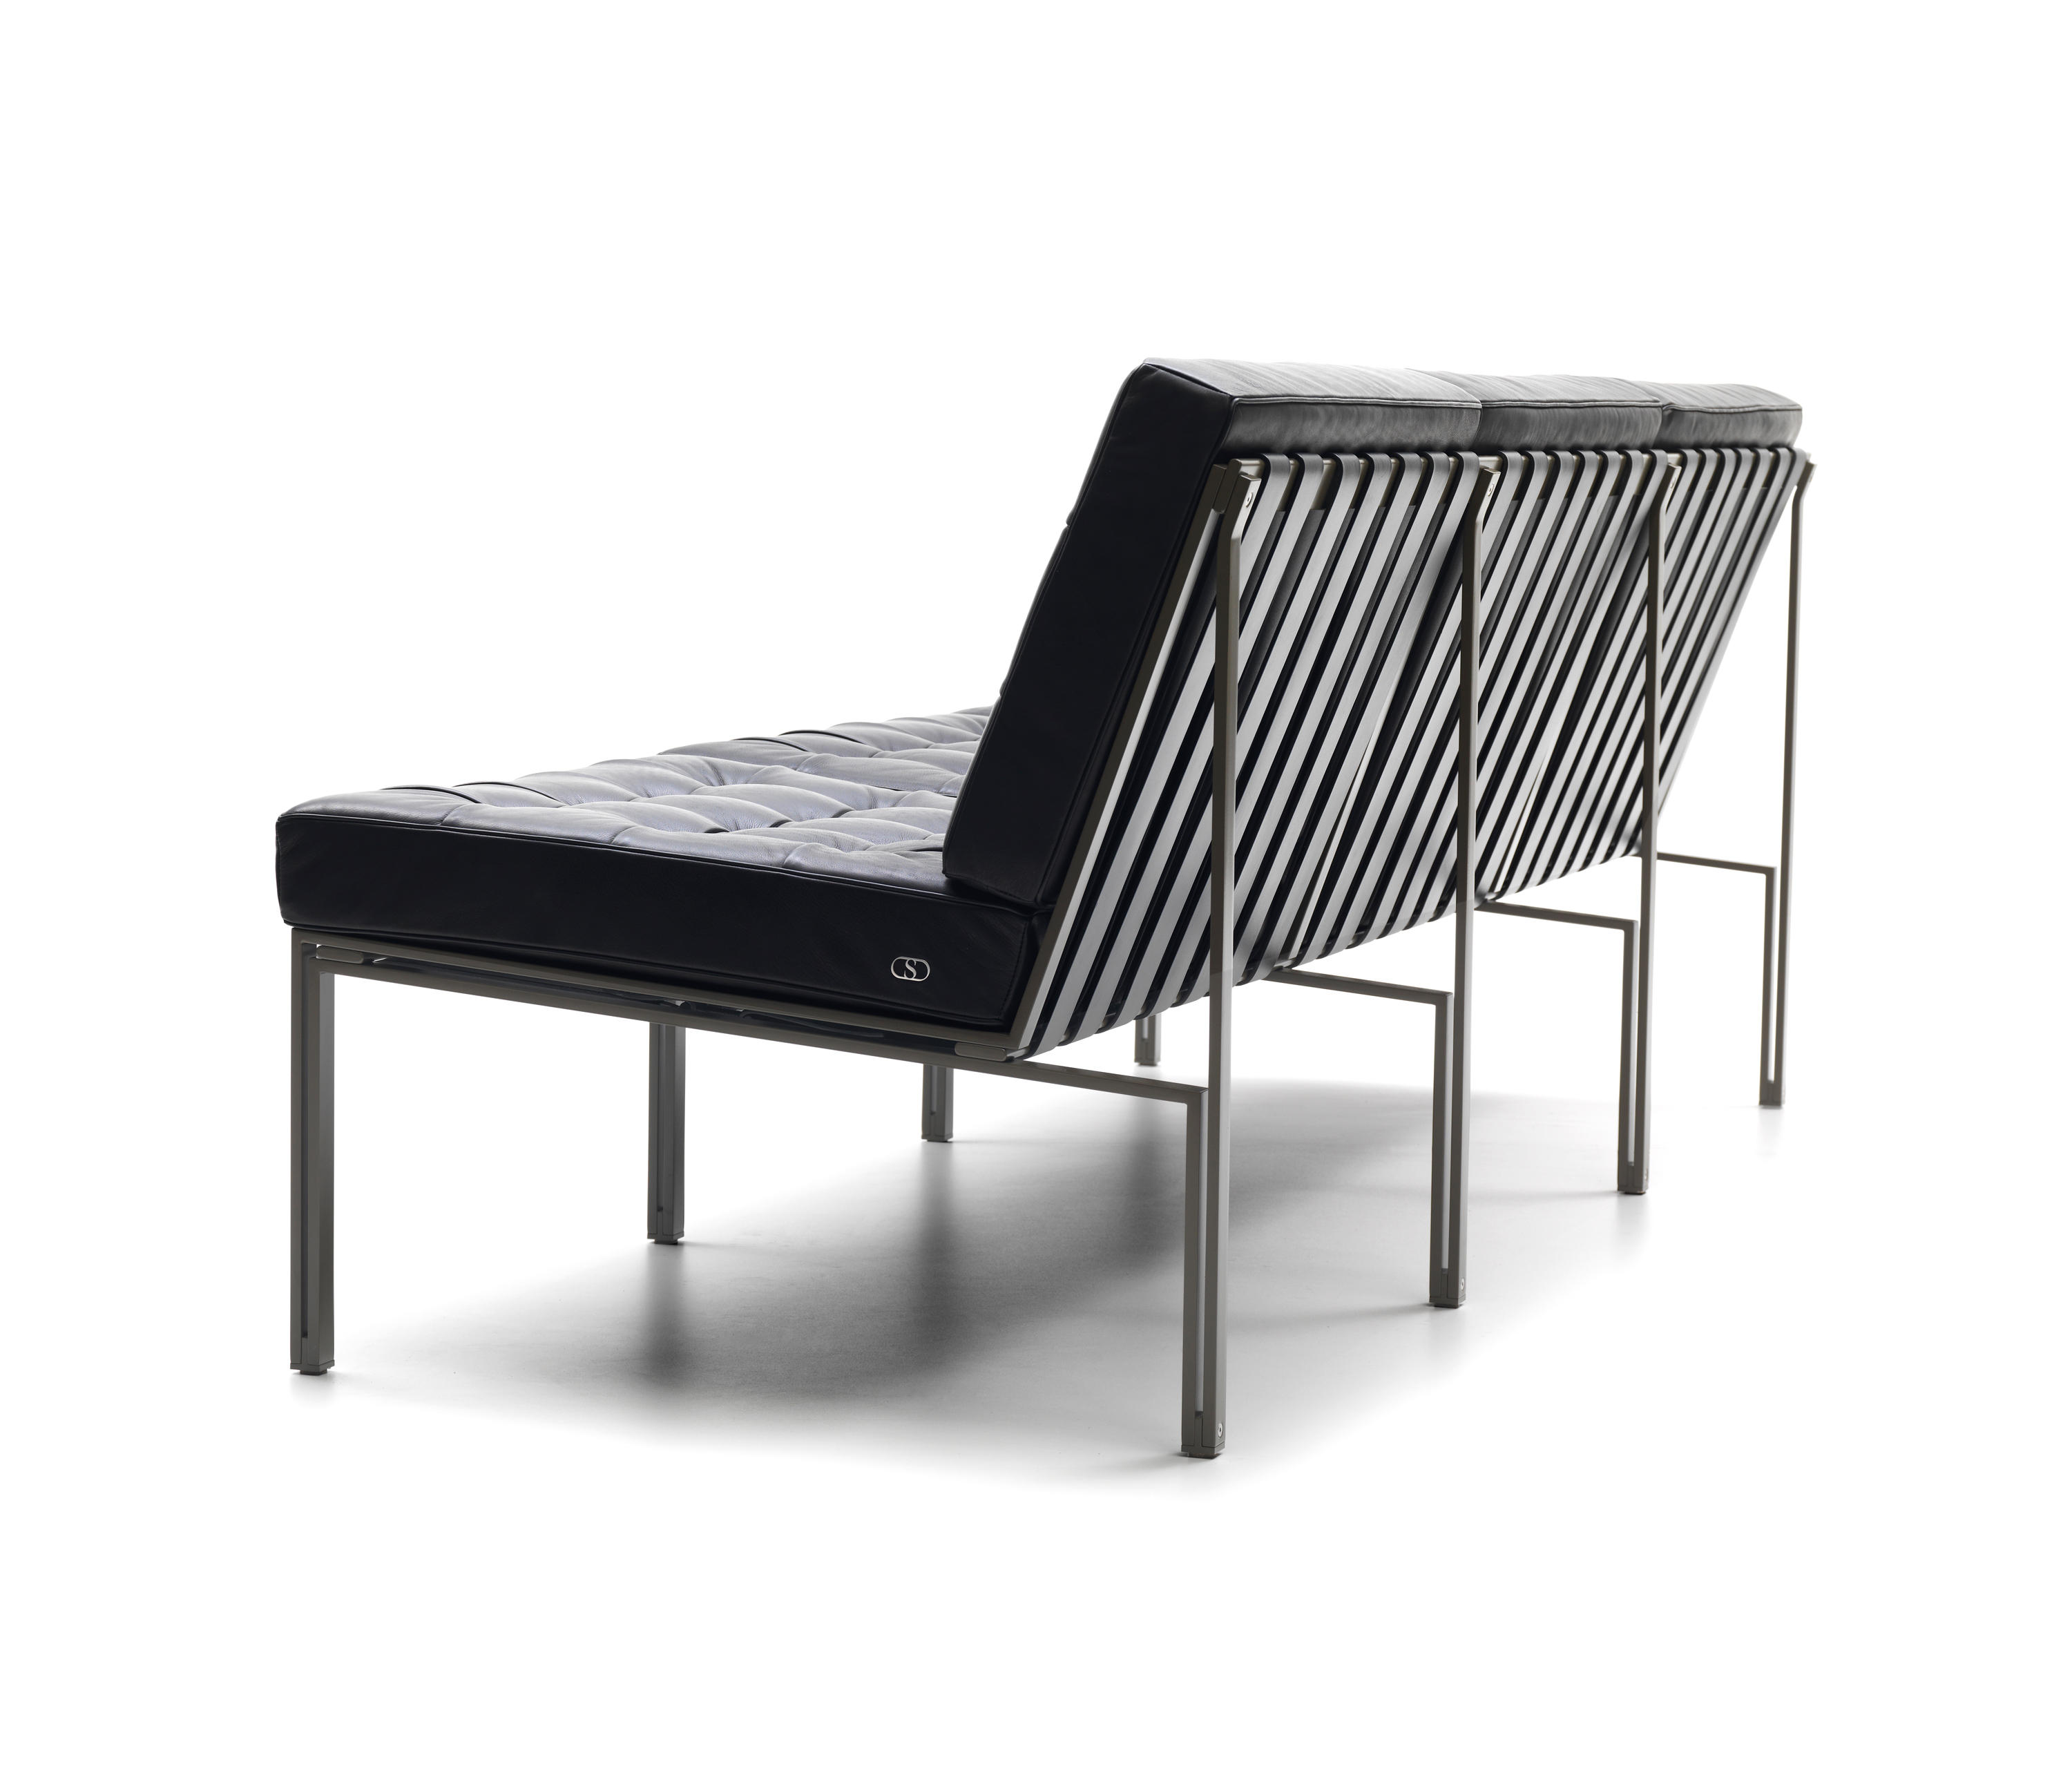 KT-221 - Sofas from de Sede | Architonic